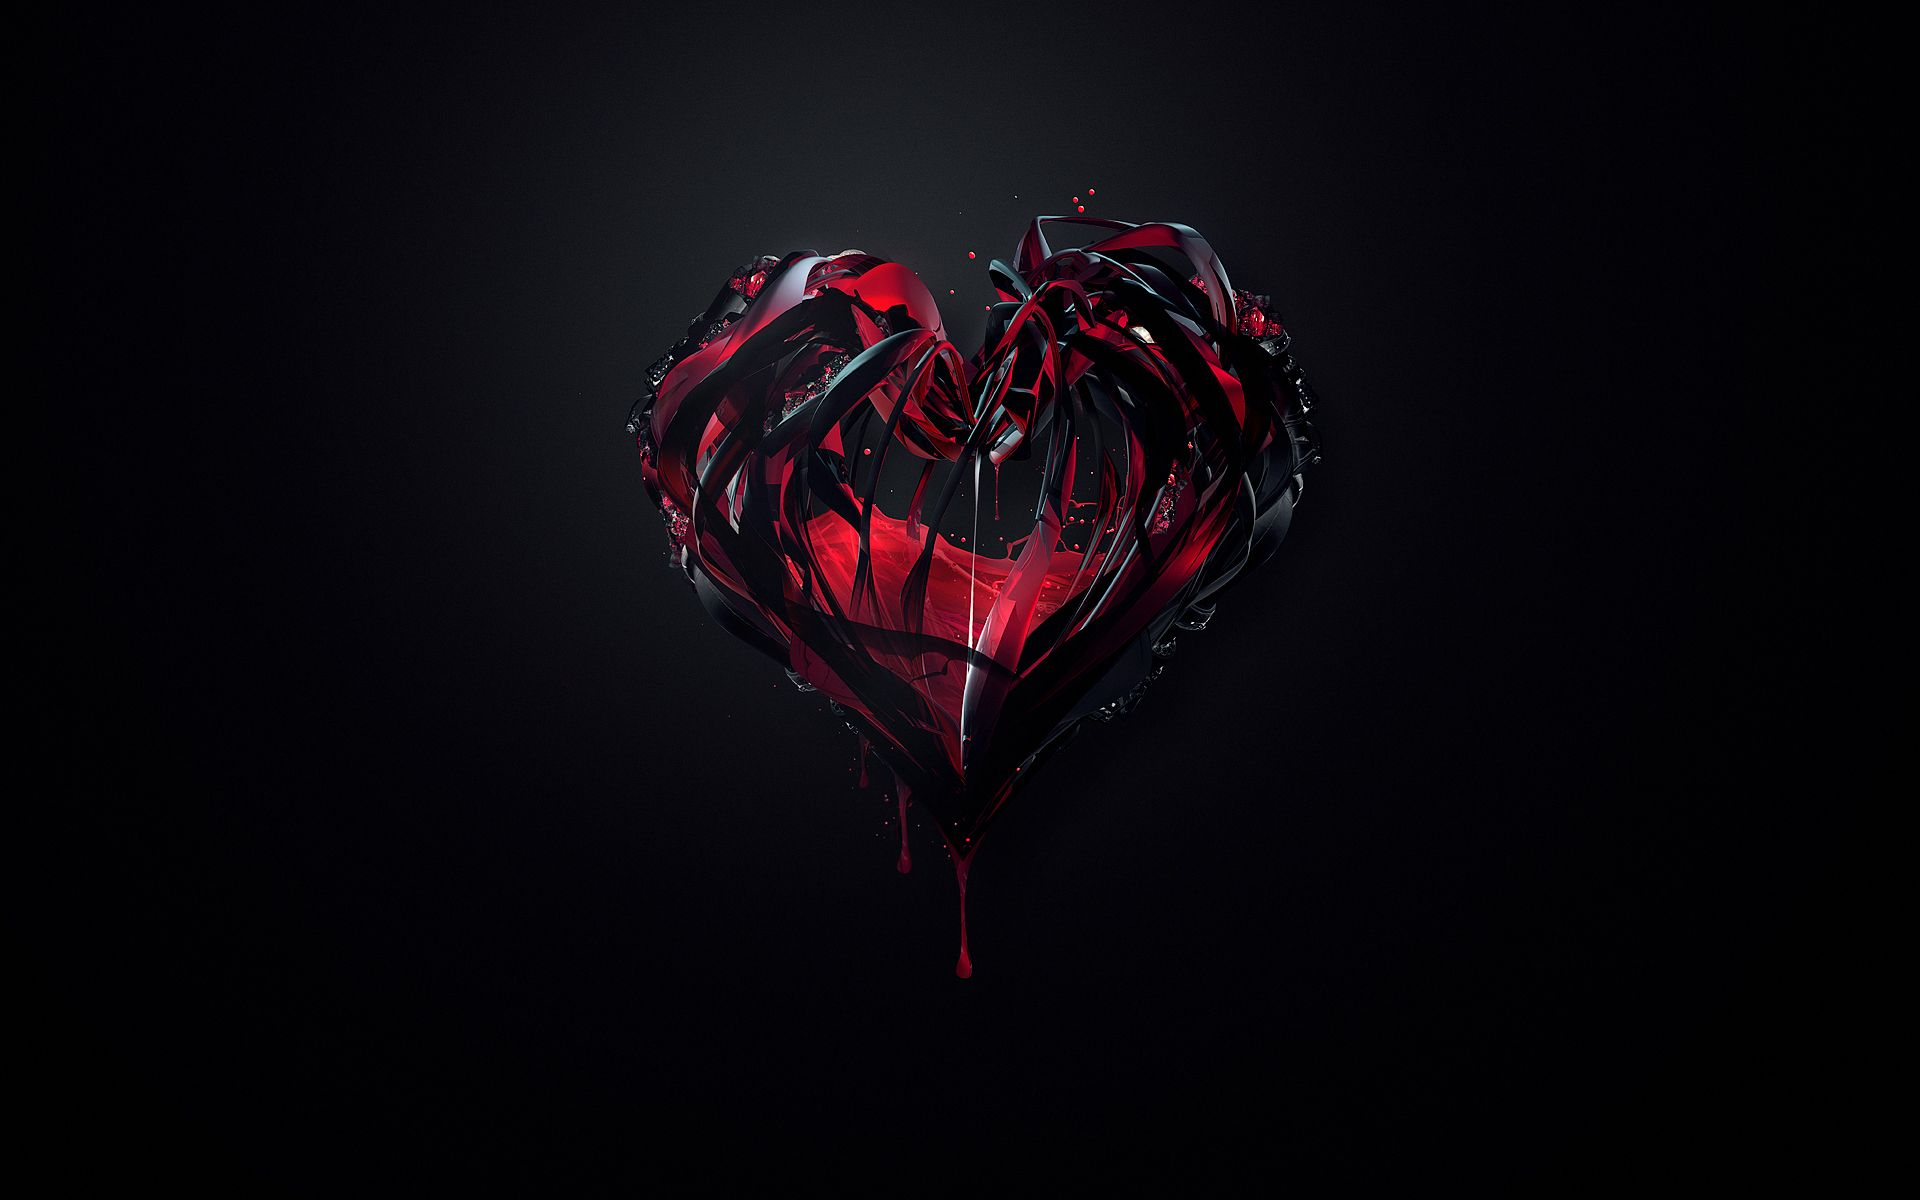 Heart Wallpapers Broken Heart Wallpaper Heart Wallpaper Black Wallpaper